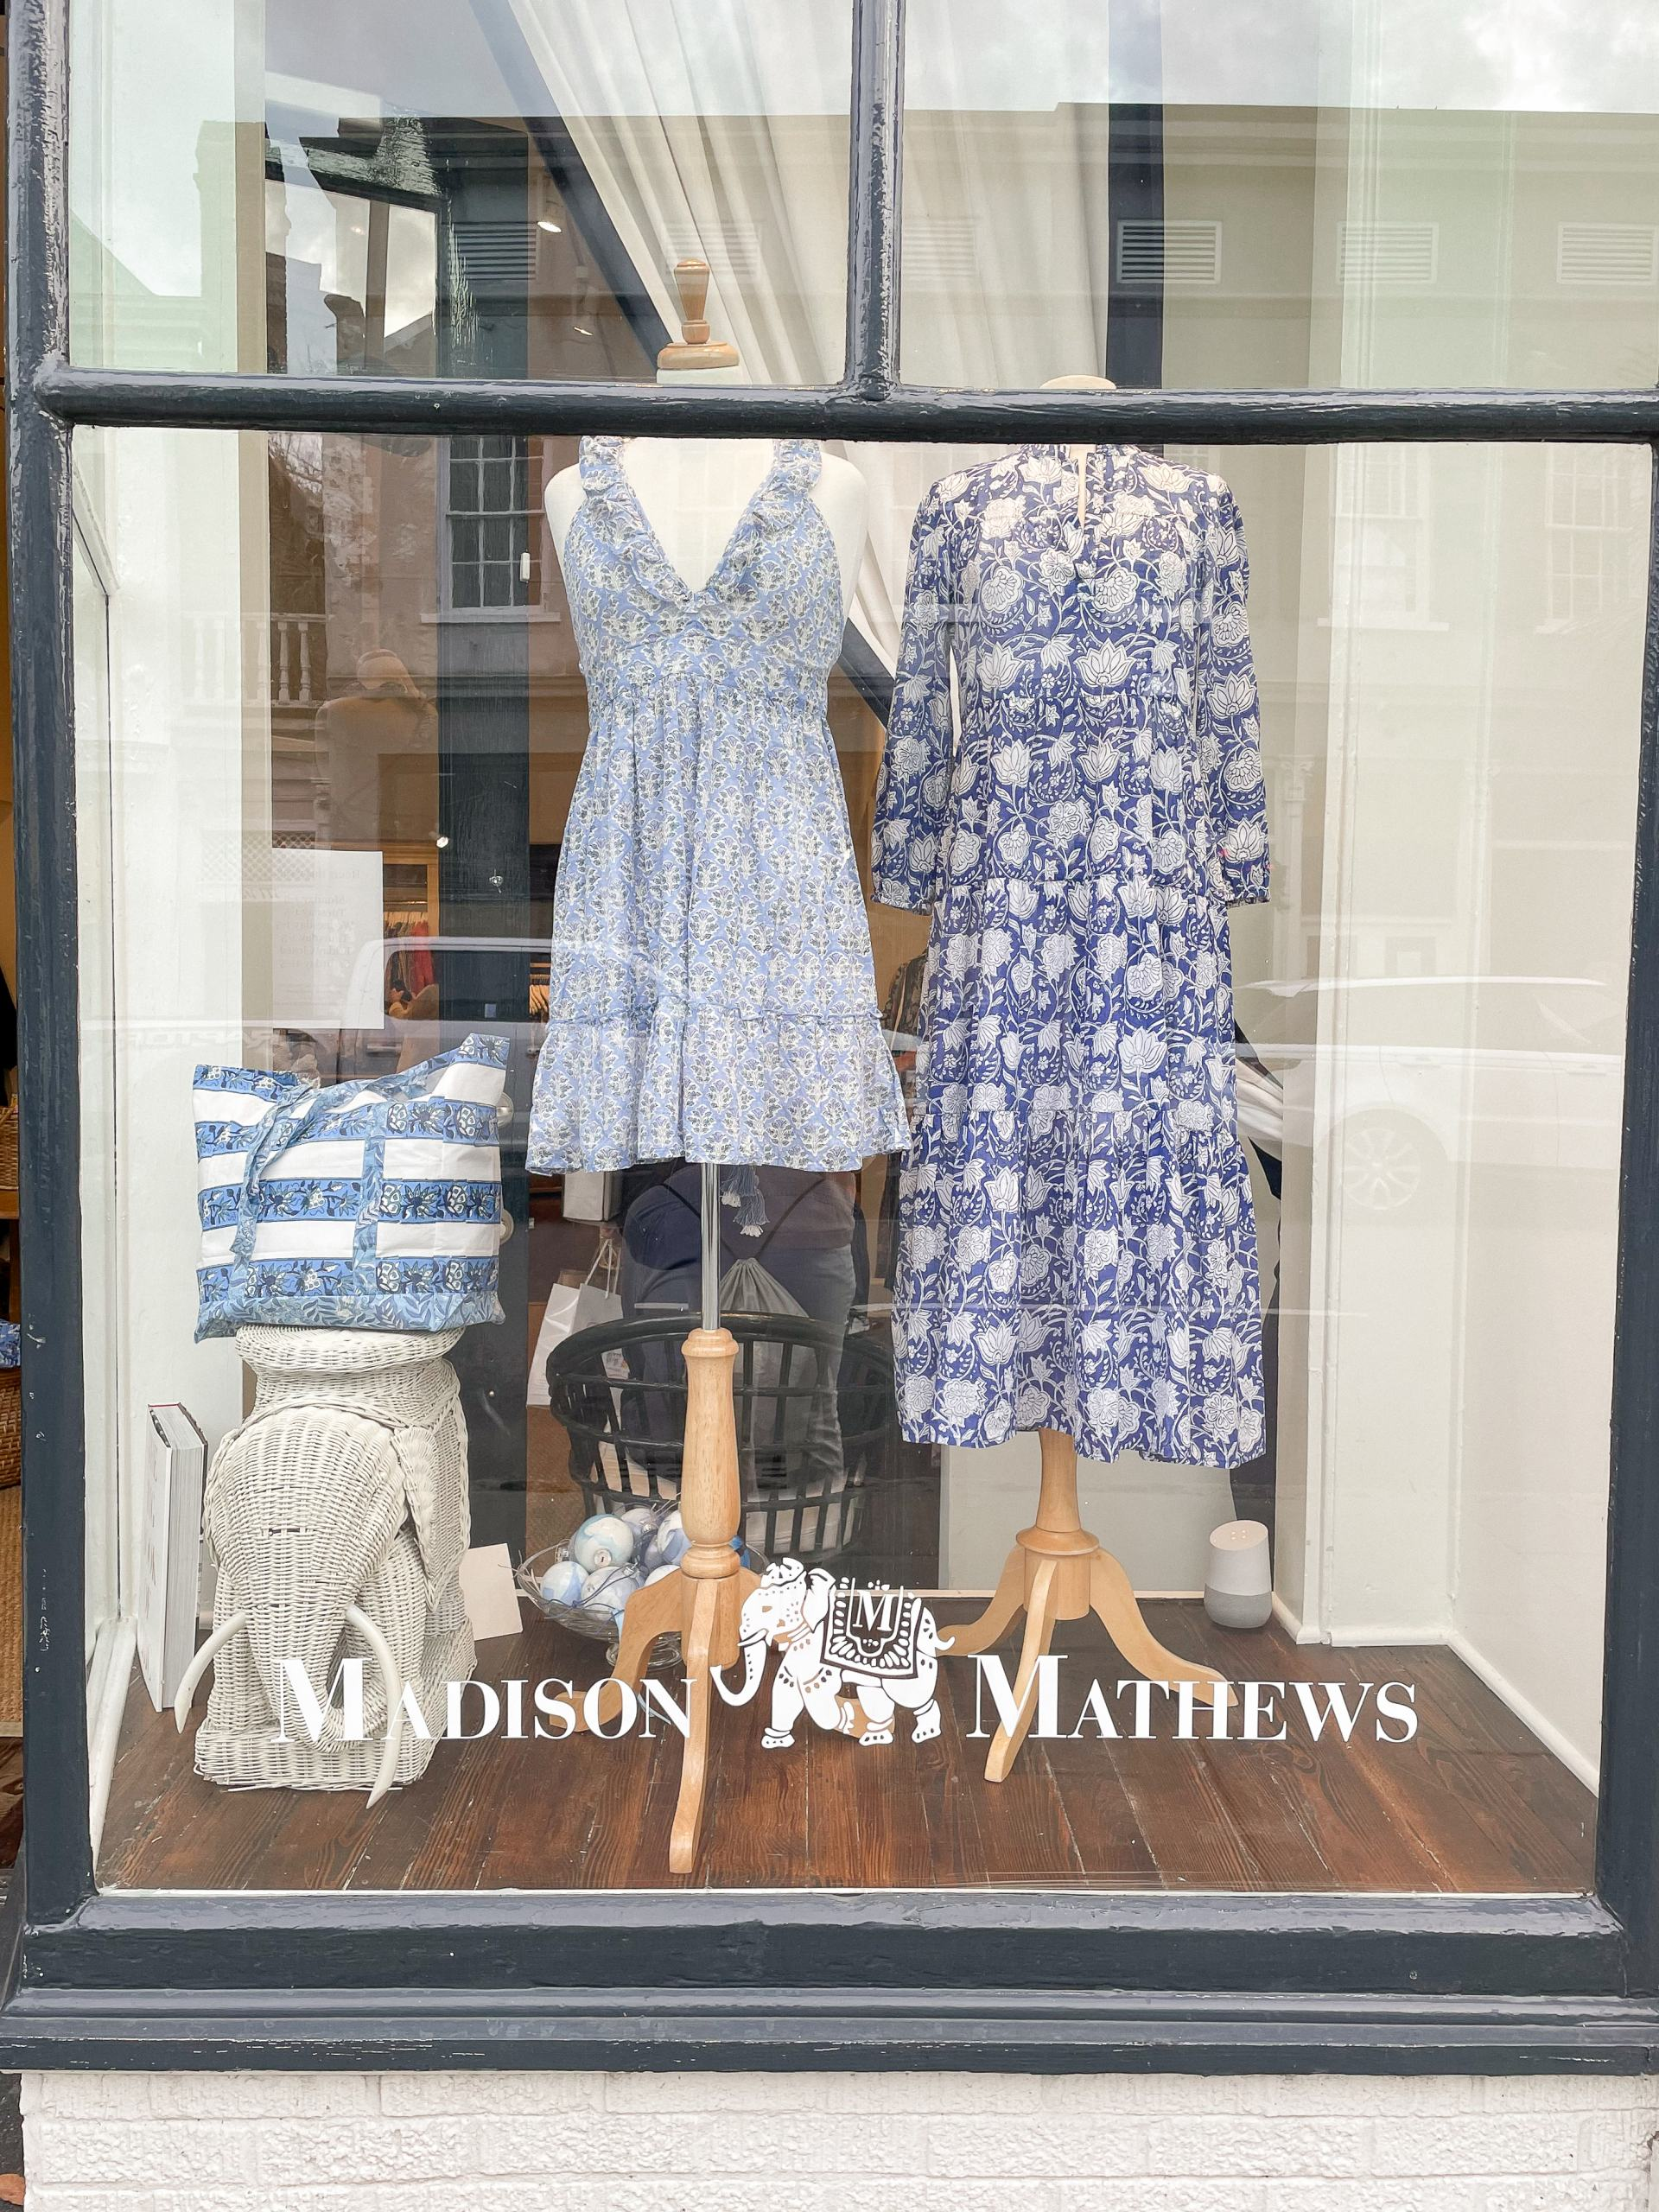 madison mathews window